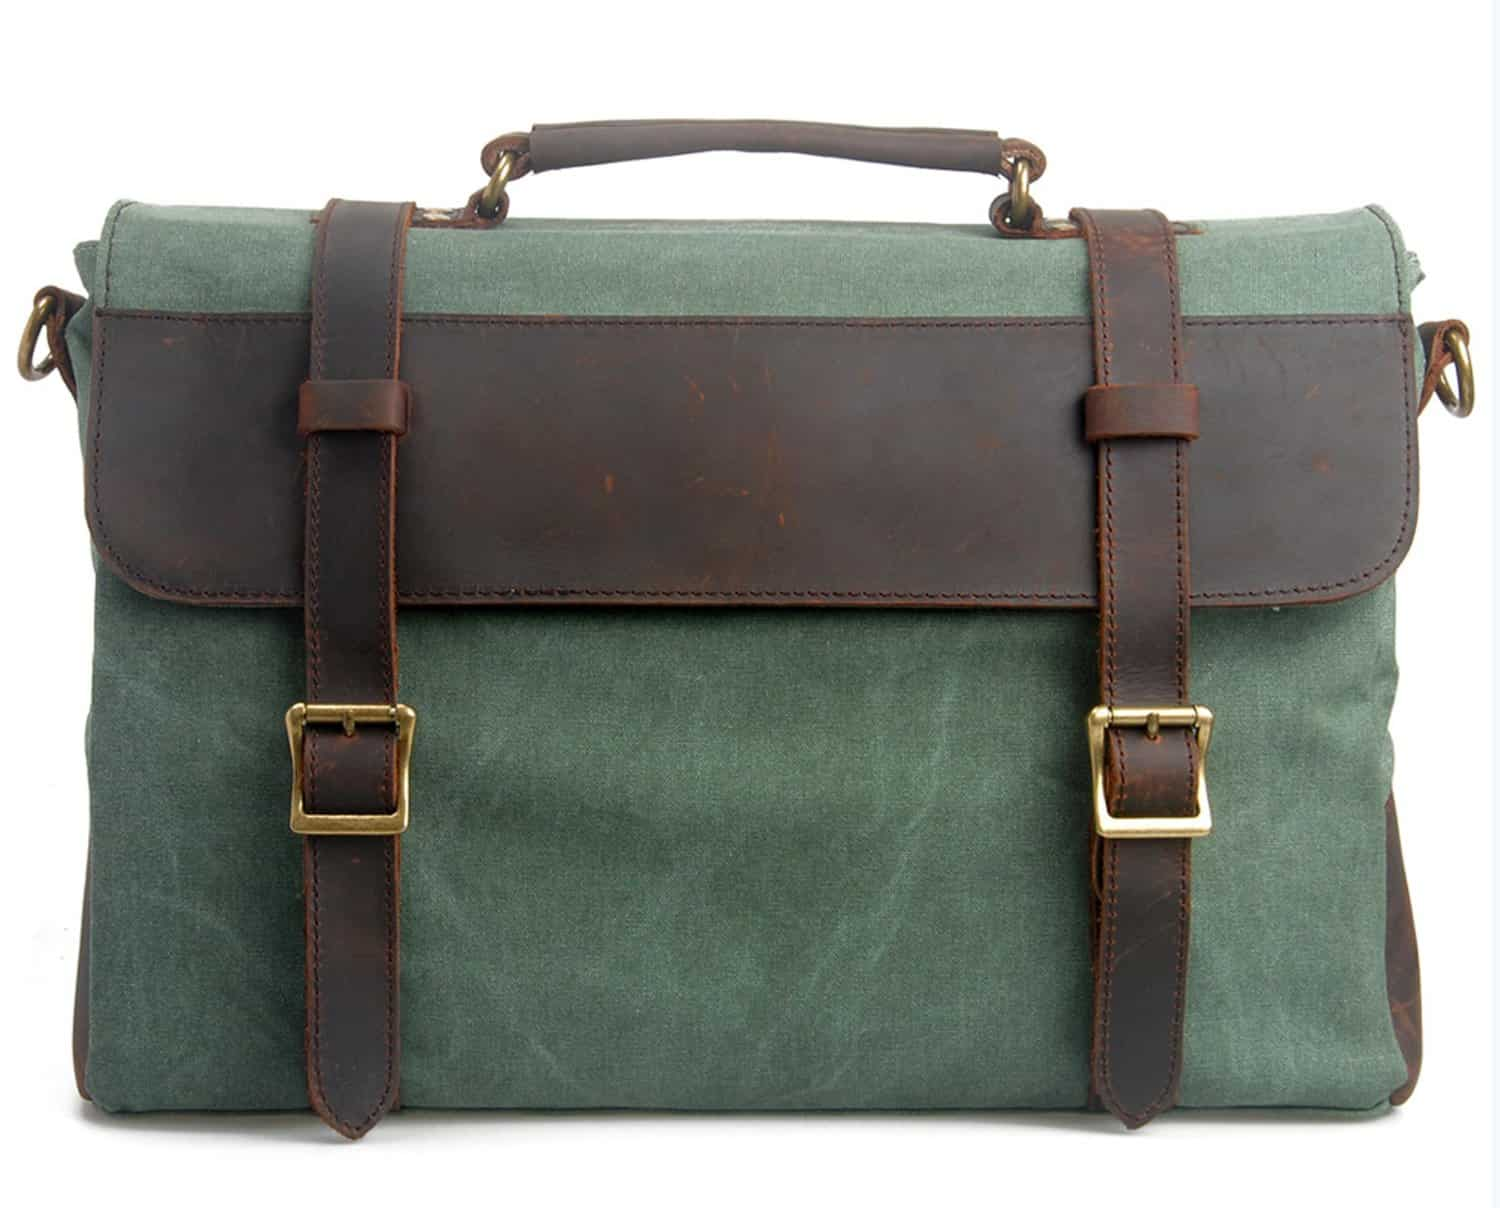 briefcase for women - green and brown briefcase